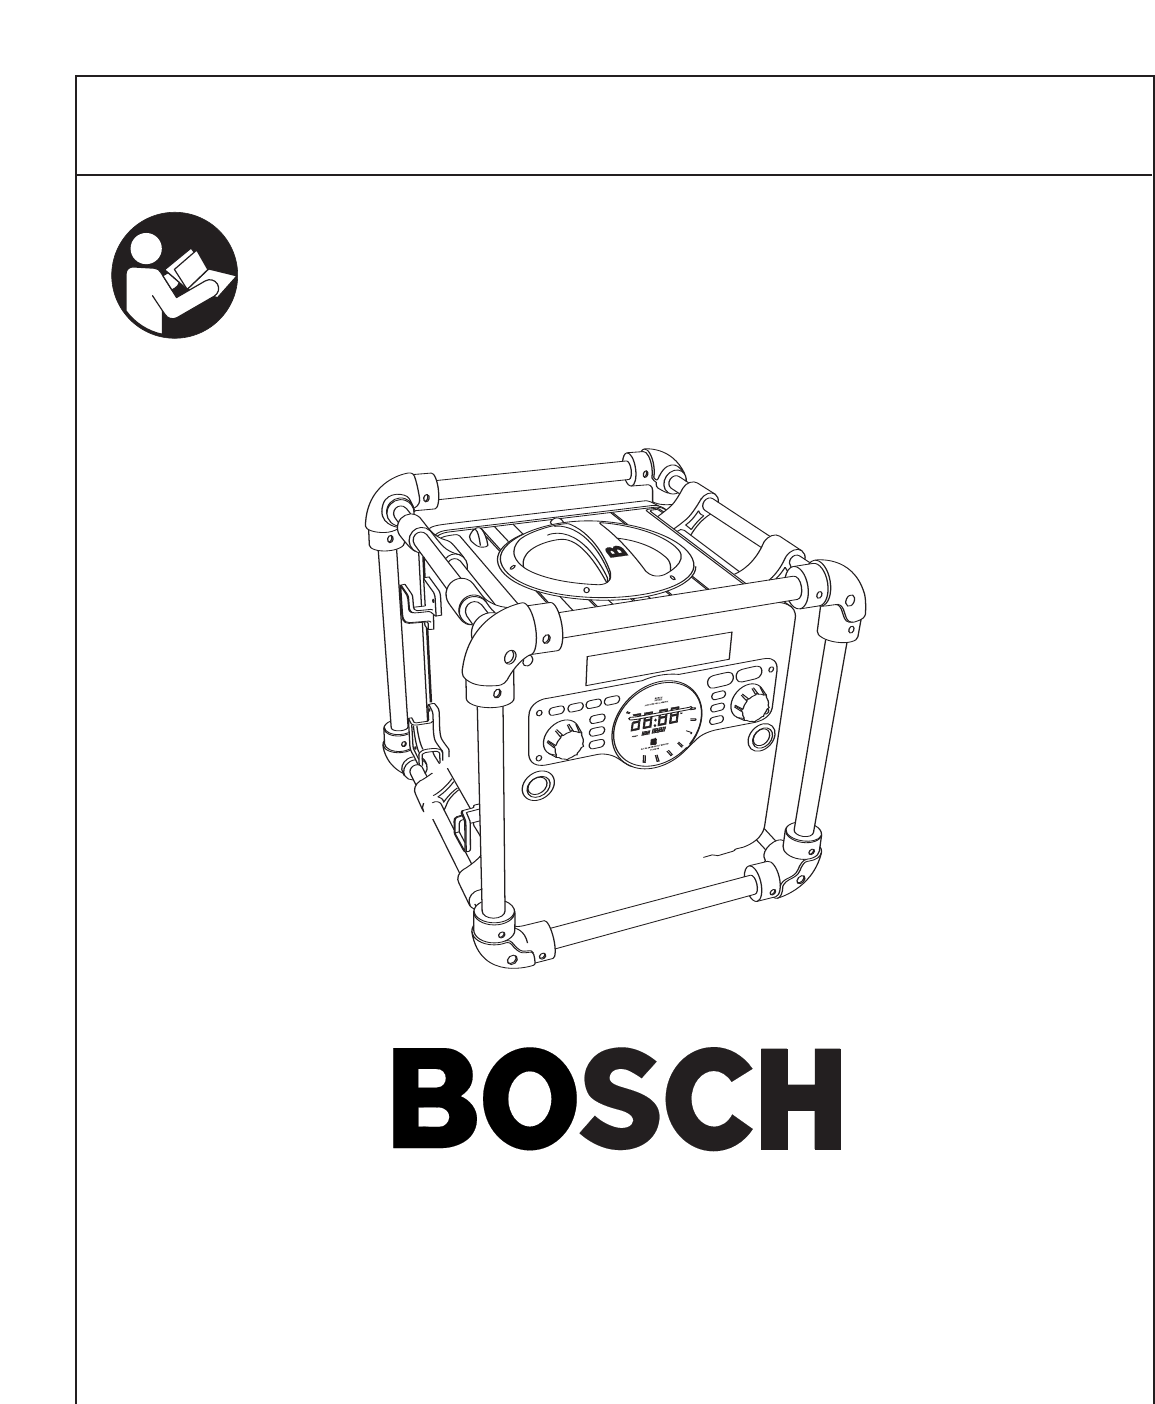 Bosch Appliances Portable Radio Pb10 Cd User Guide